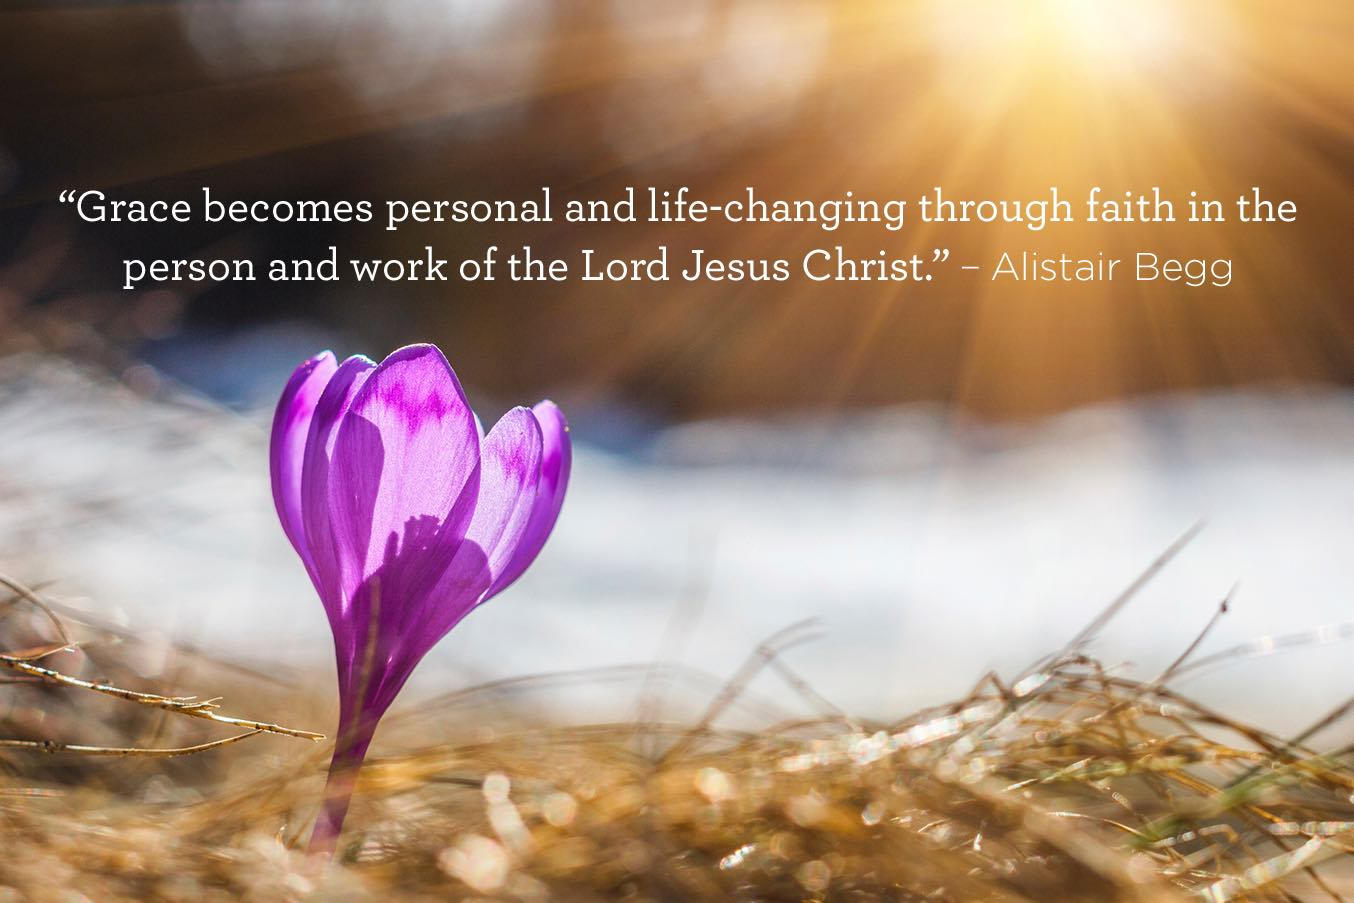 thumbnail image for The Life-Changing Grace of Jesus